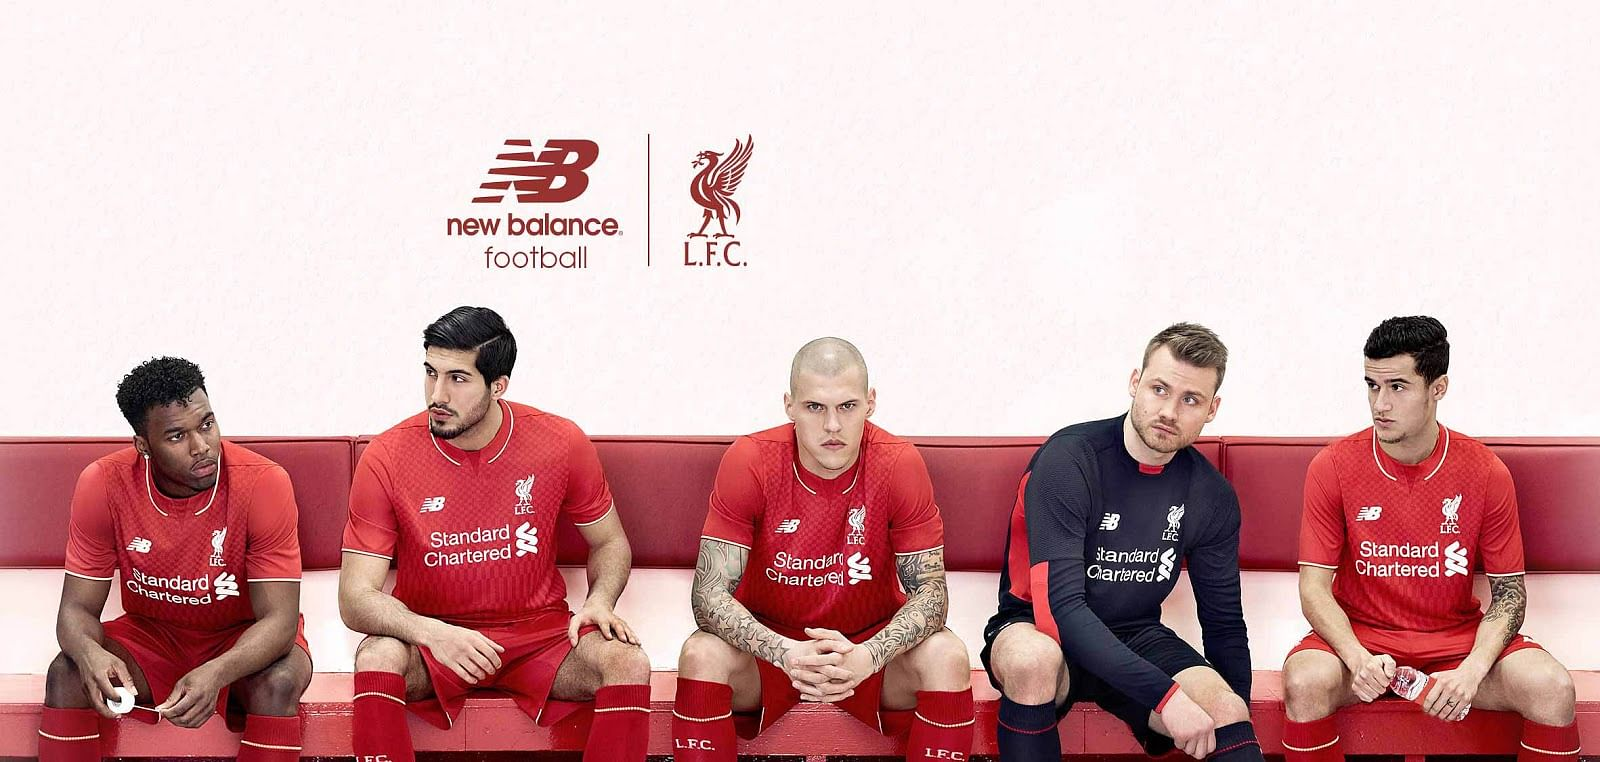 Liverpool's new home kit for the 2015-16 season released